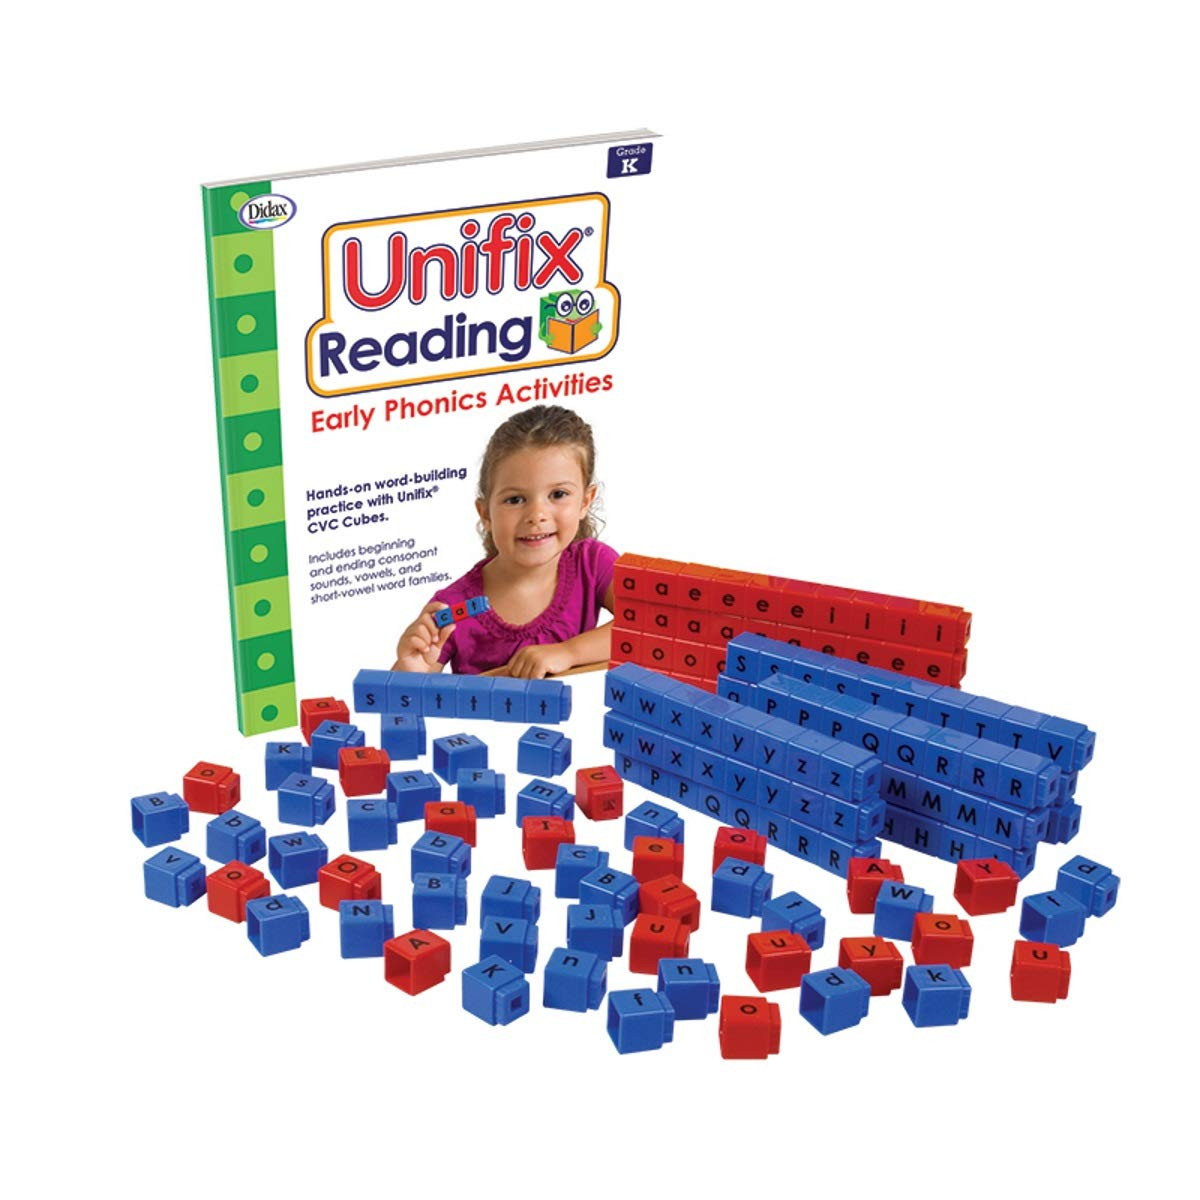 Didax Educational Resources Unifix Letter Cubes - Small Group by Didax